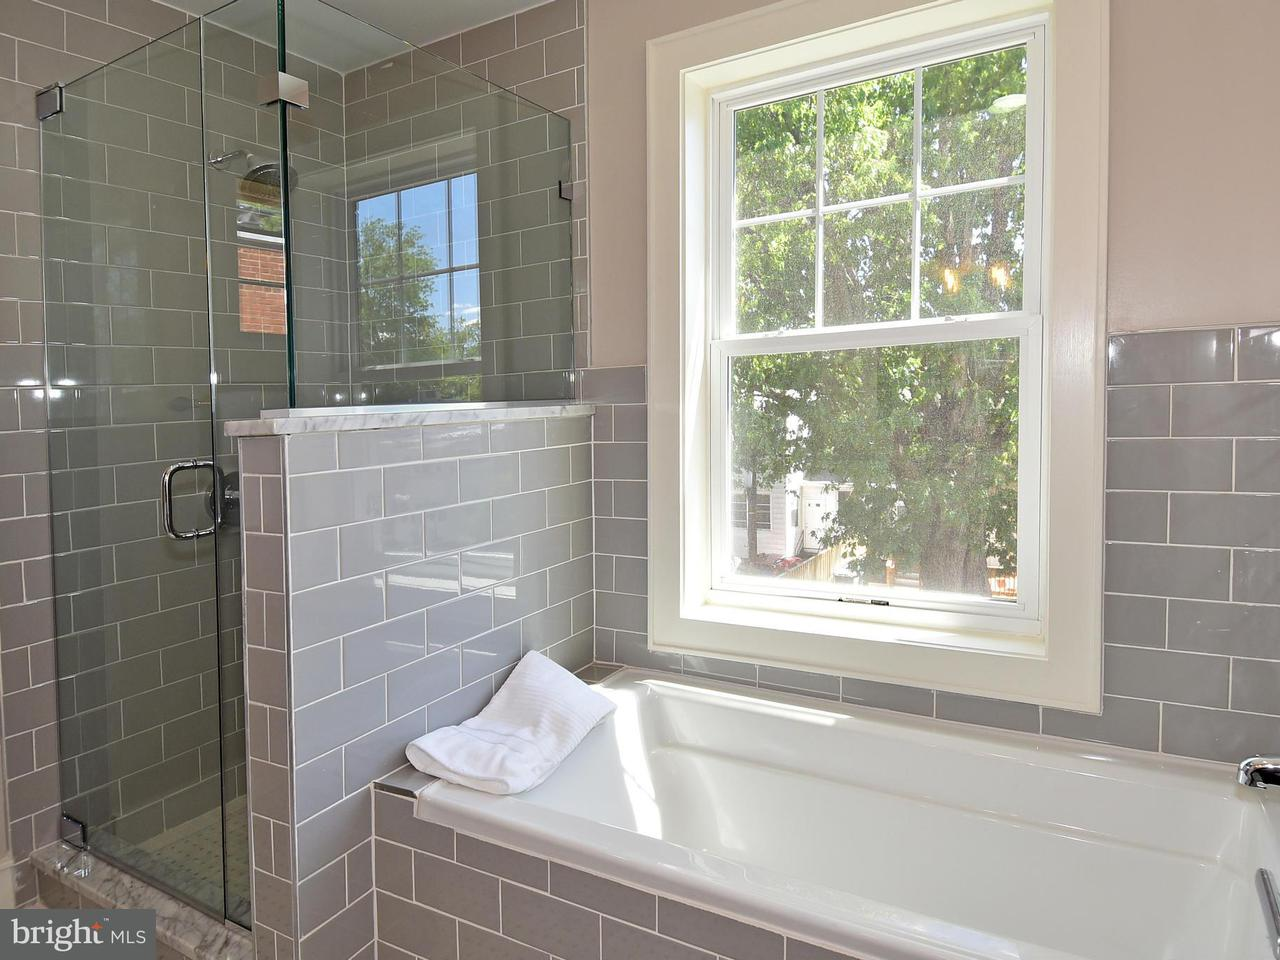 Additional photo for property listing at 4211 12TH PL NE 4211 12TH PL NE Washington, District Of Columbia 20017 Vereinigte Staaten